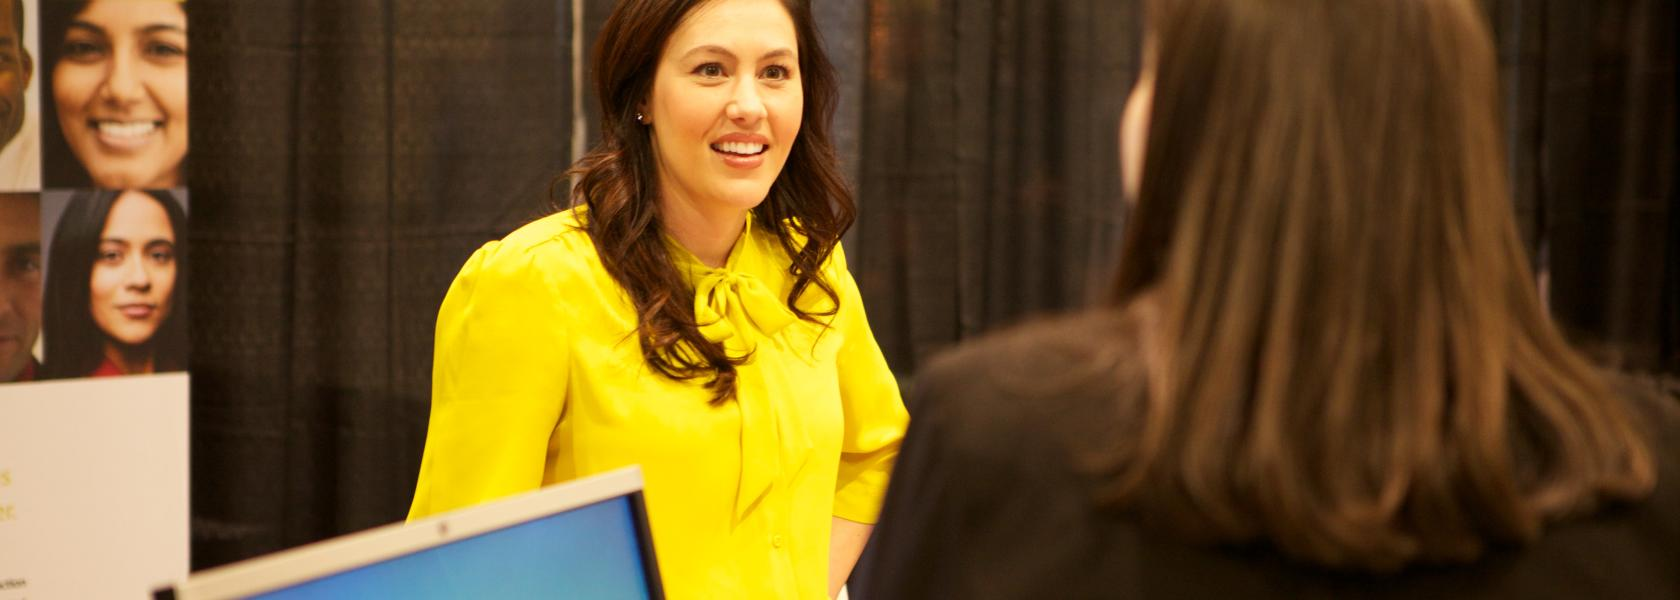 Lady in Yellow at Trade Show Booth